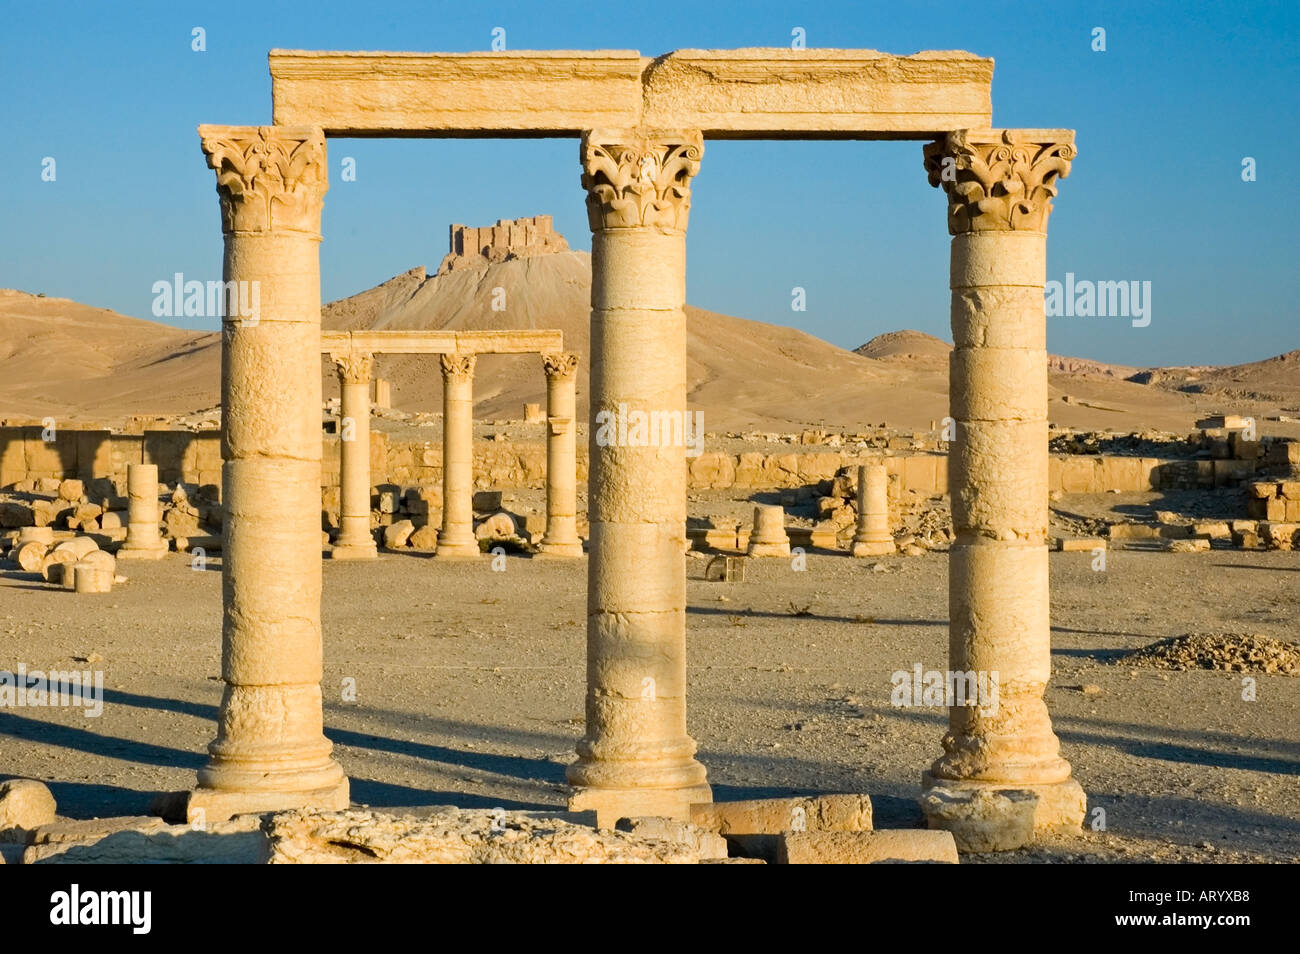 The Arab Castle, Qalaat Ibn Maan, overlooks the ruins of ancient Tadmor, Palmyra, Central Syria, Middle East. DSC_5853 - Stock Image